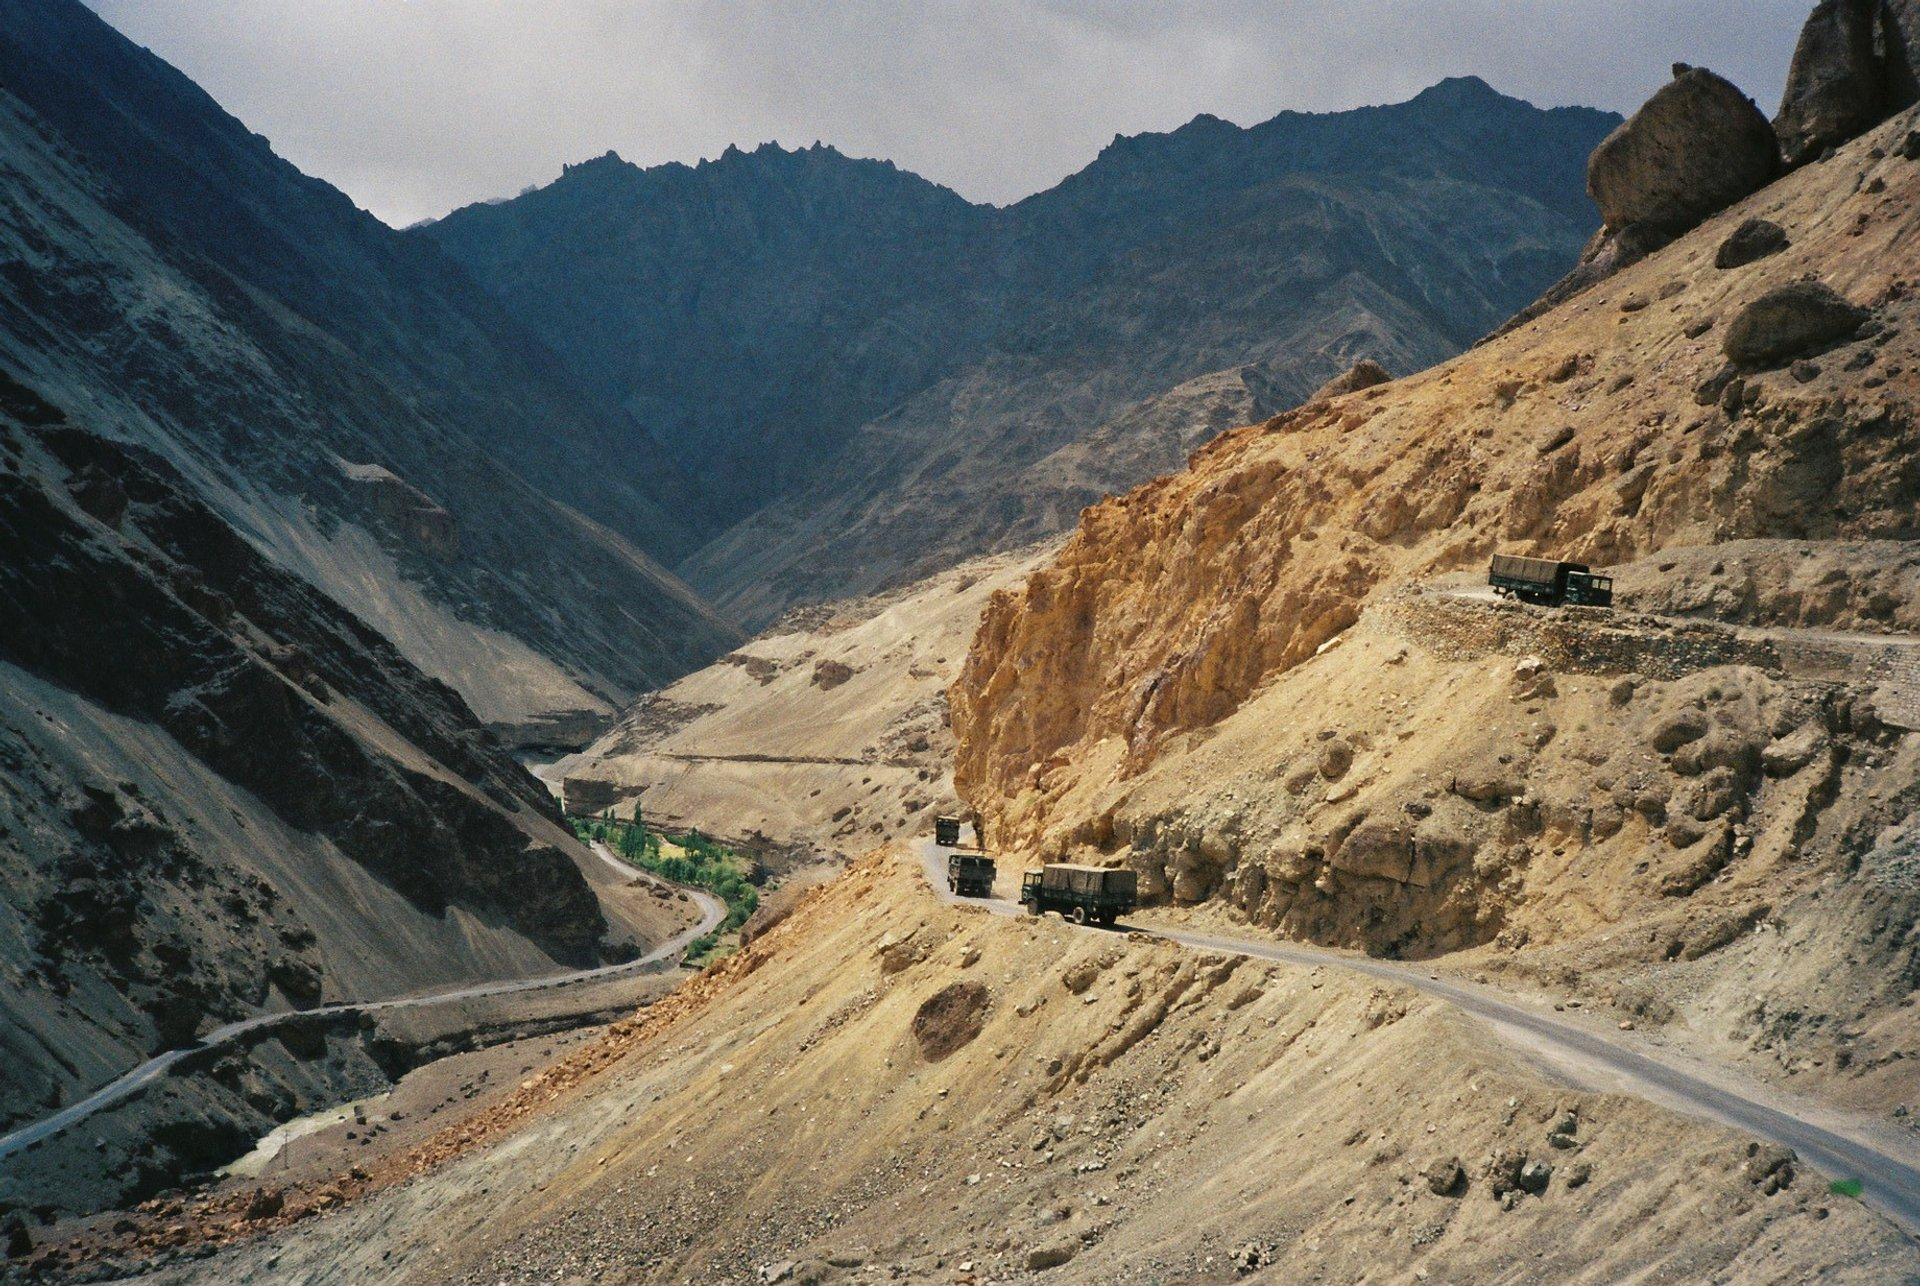 Approaching the Oasis - Ladakh 2020